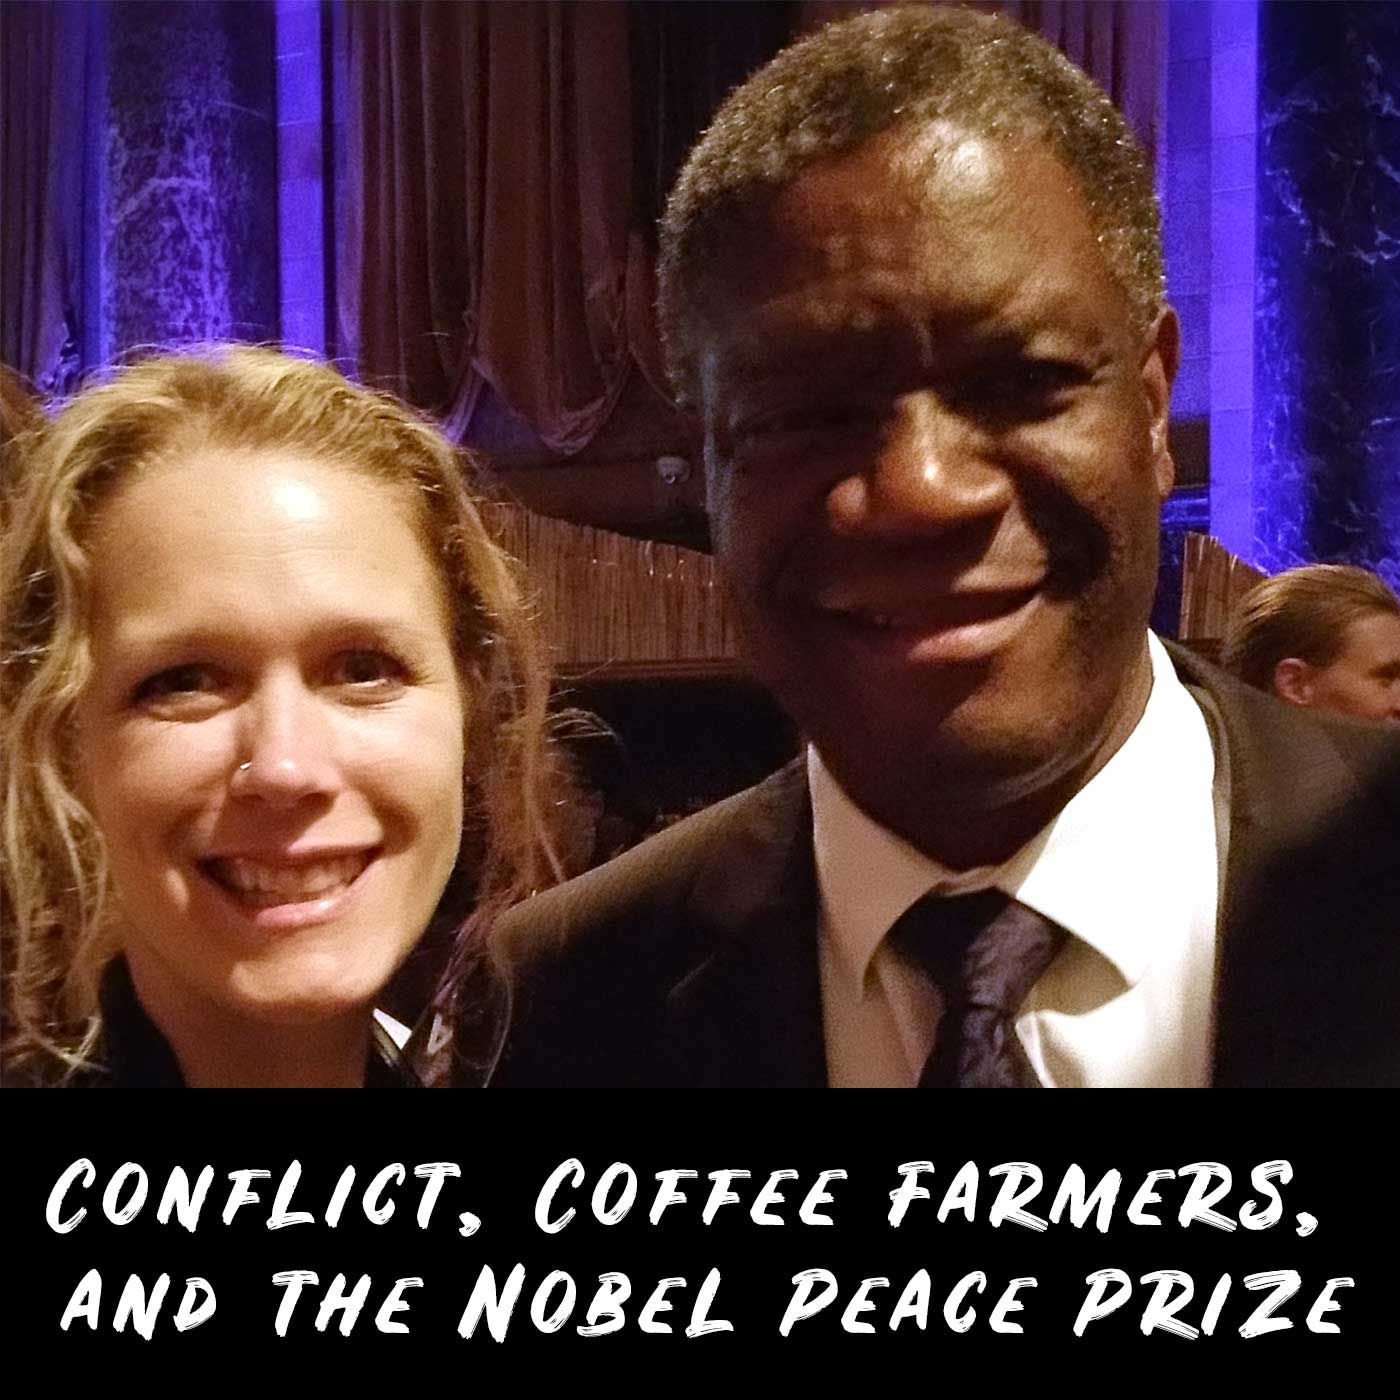 Conflict, Coffee Farmers, and the Nobel Peace Prize